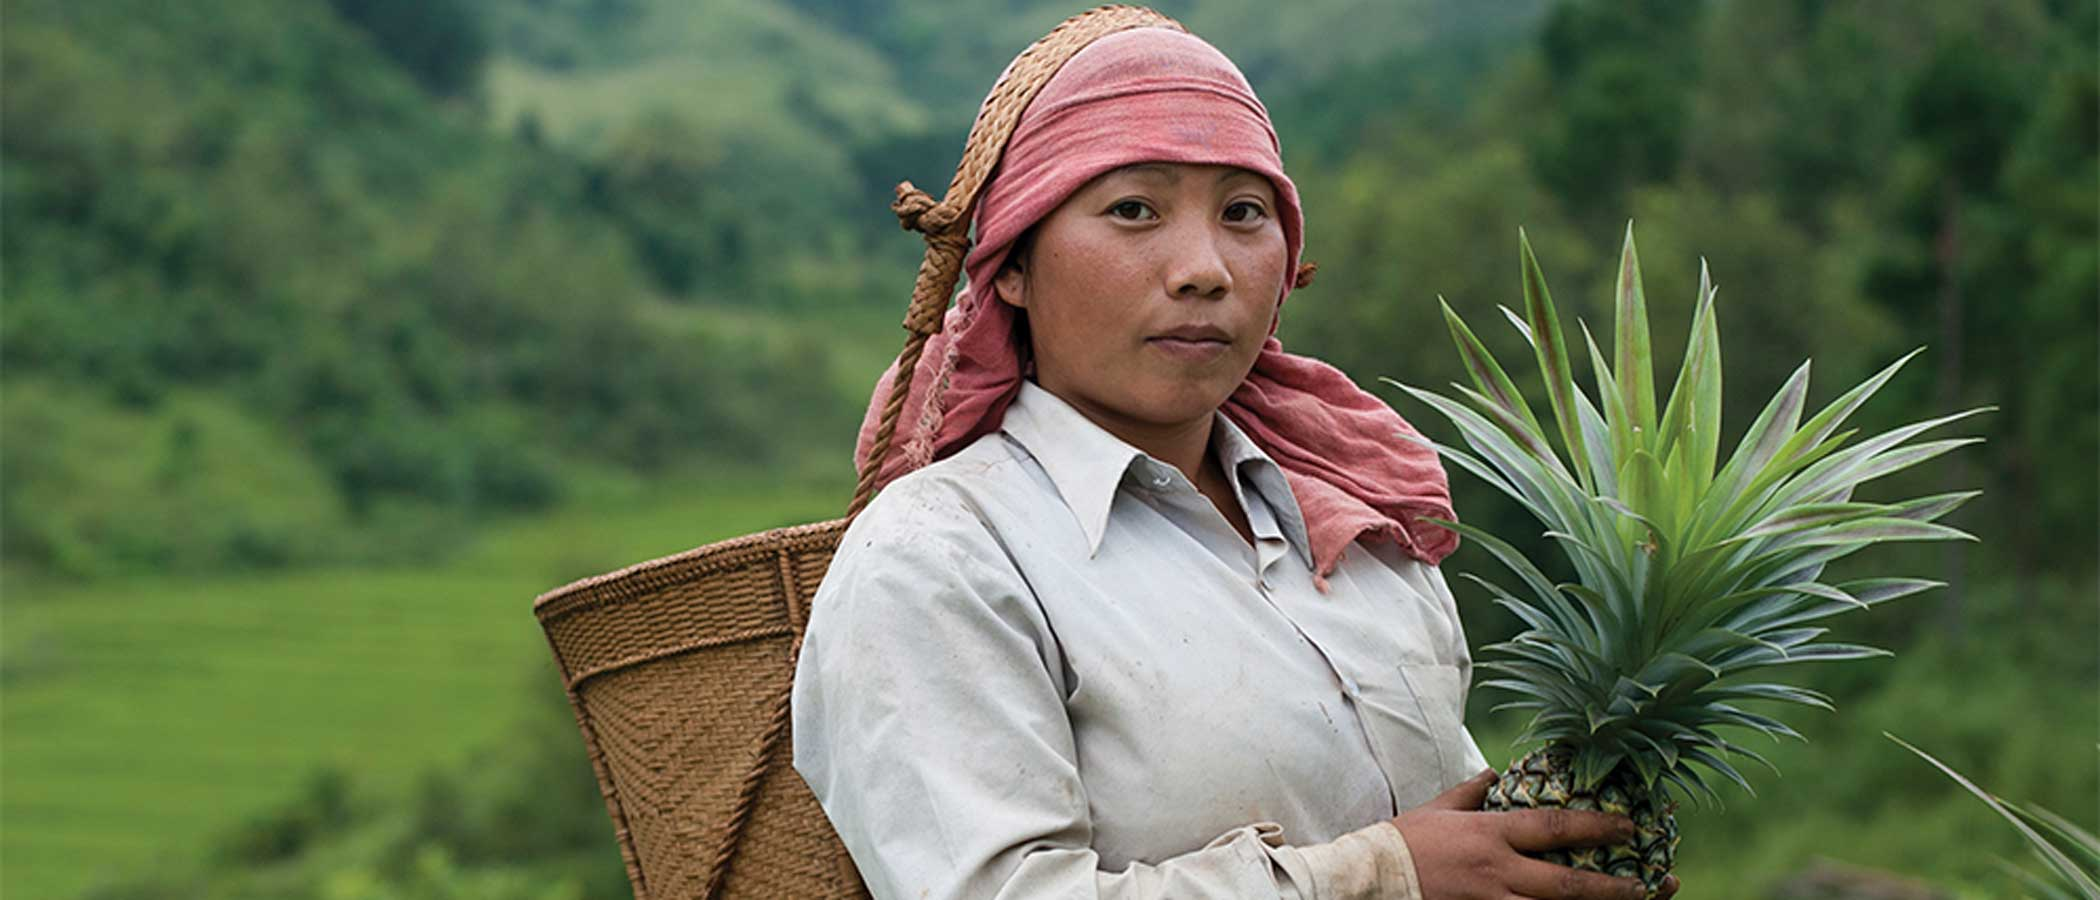 A female farmer holds a pineapple, with a basket hanging on her back by a strap around her head.